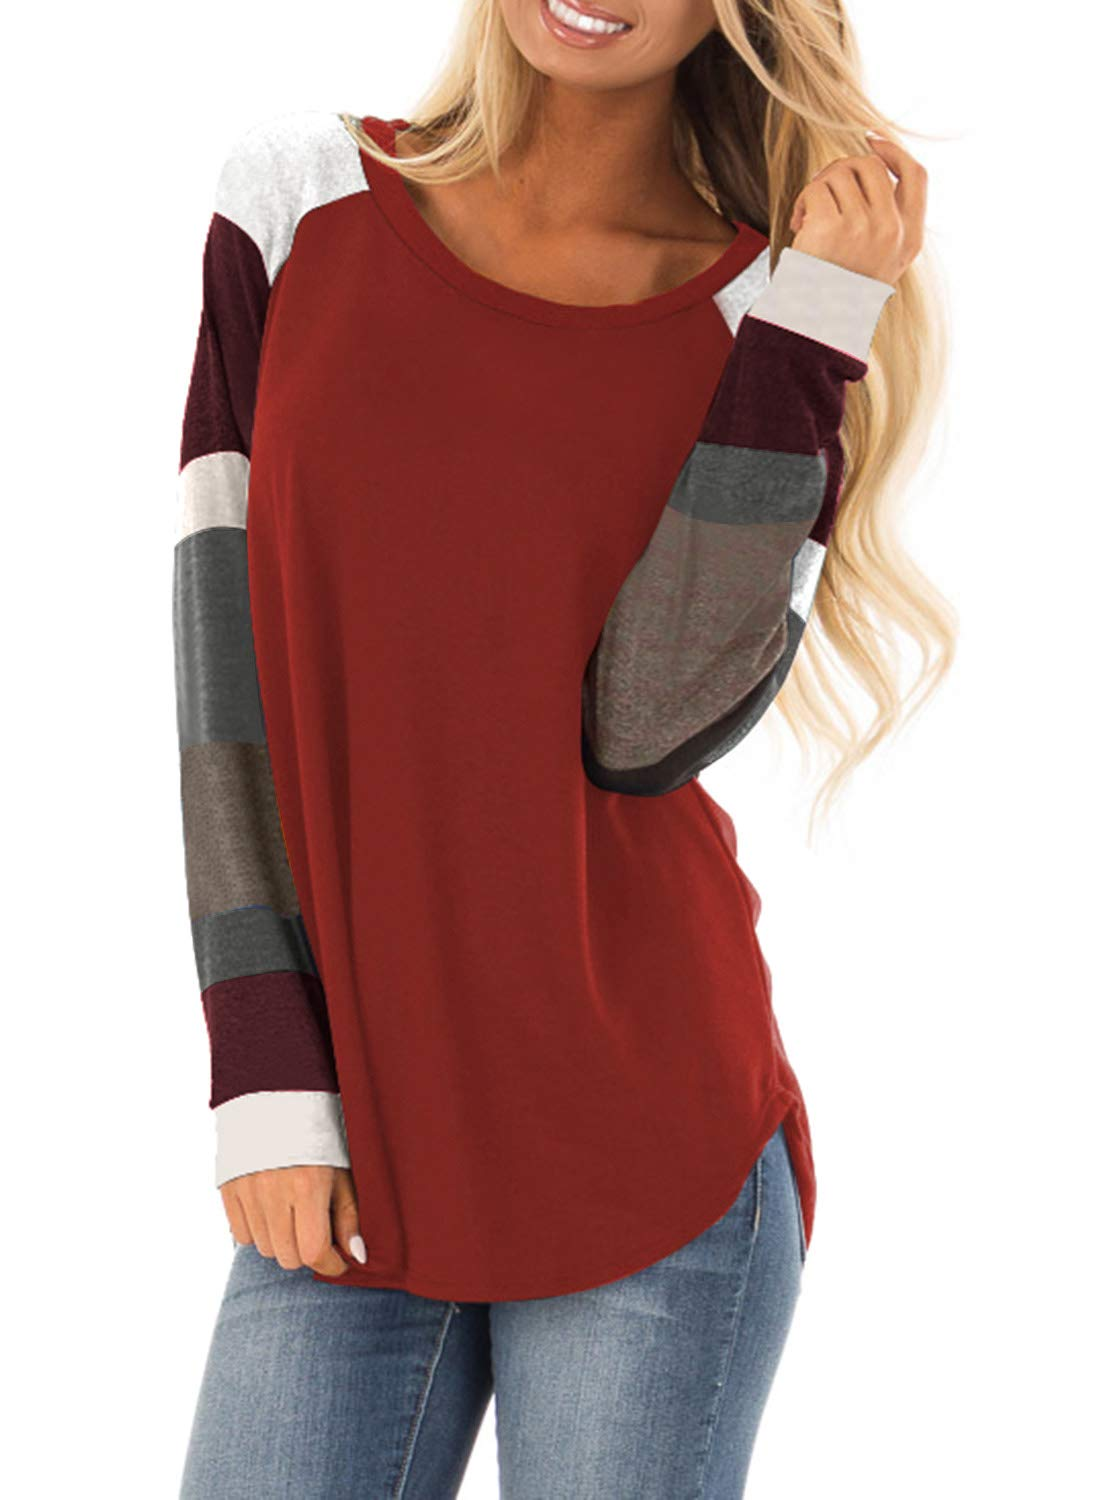 Plus Size Clothing - Women's Lightweight Color Block Long Sleeve Loose Fit Tunics Shirts Tops